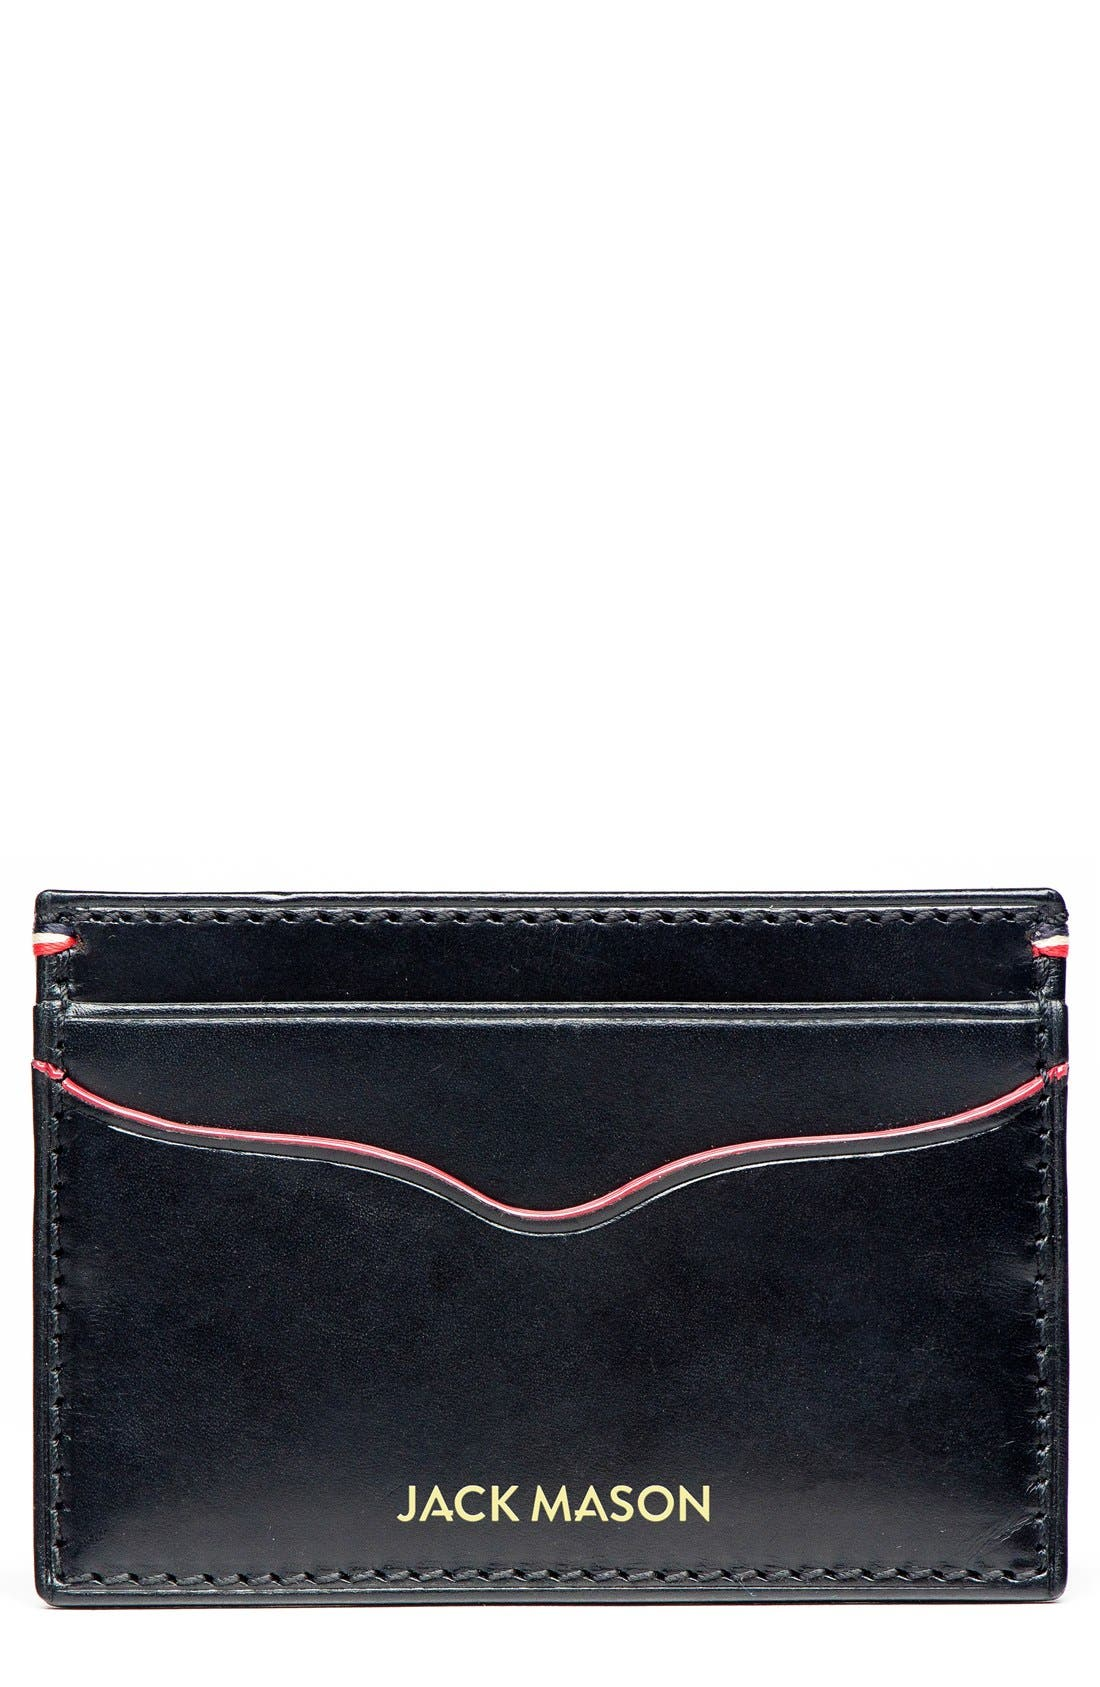 Alternate Image 1 Selected - Jack Mason Vacchetta Lux Leather Card Case